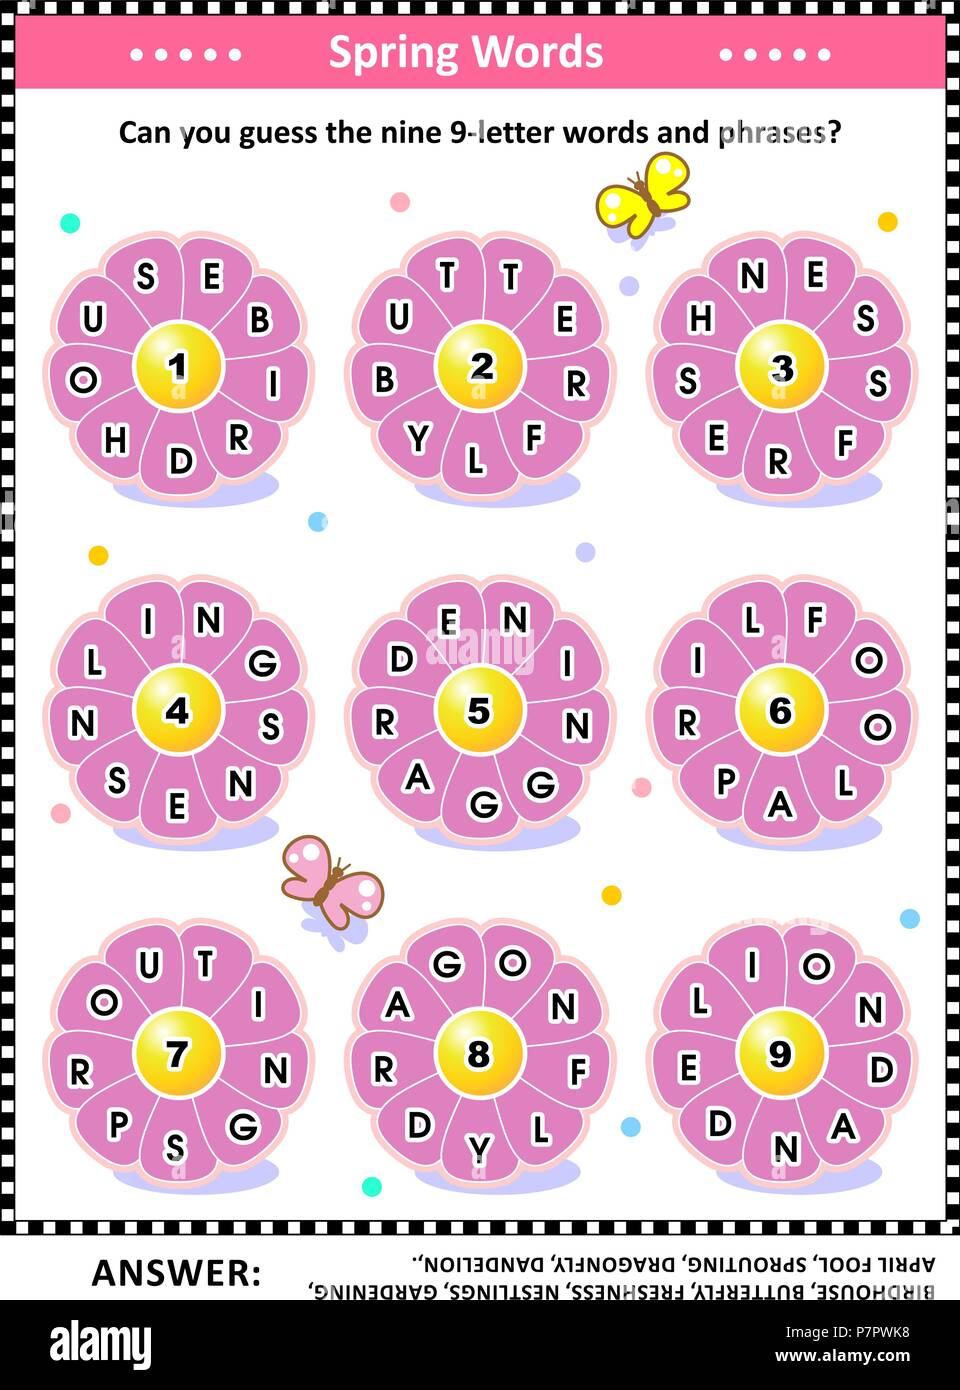 spring themed word puzzle english language with words written on petals around the flowers can you guess the nine 9 letter words answer included